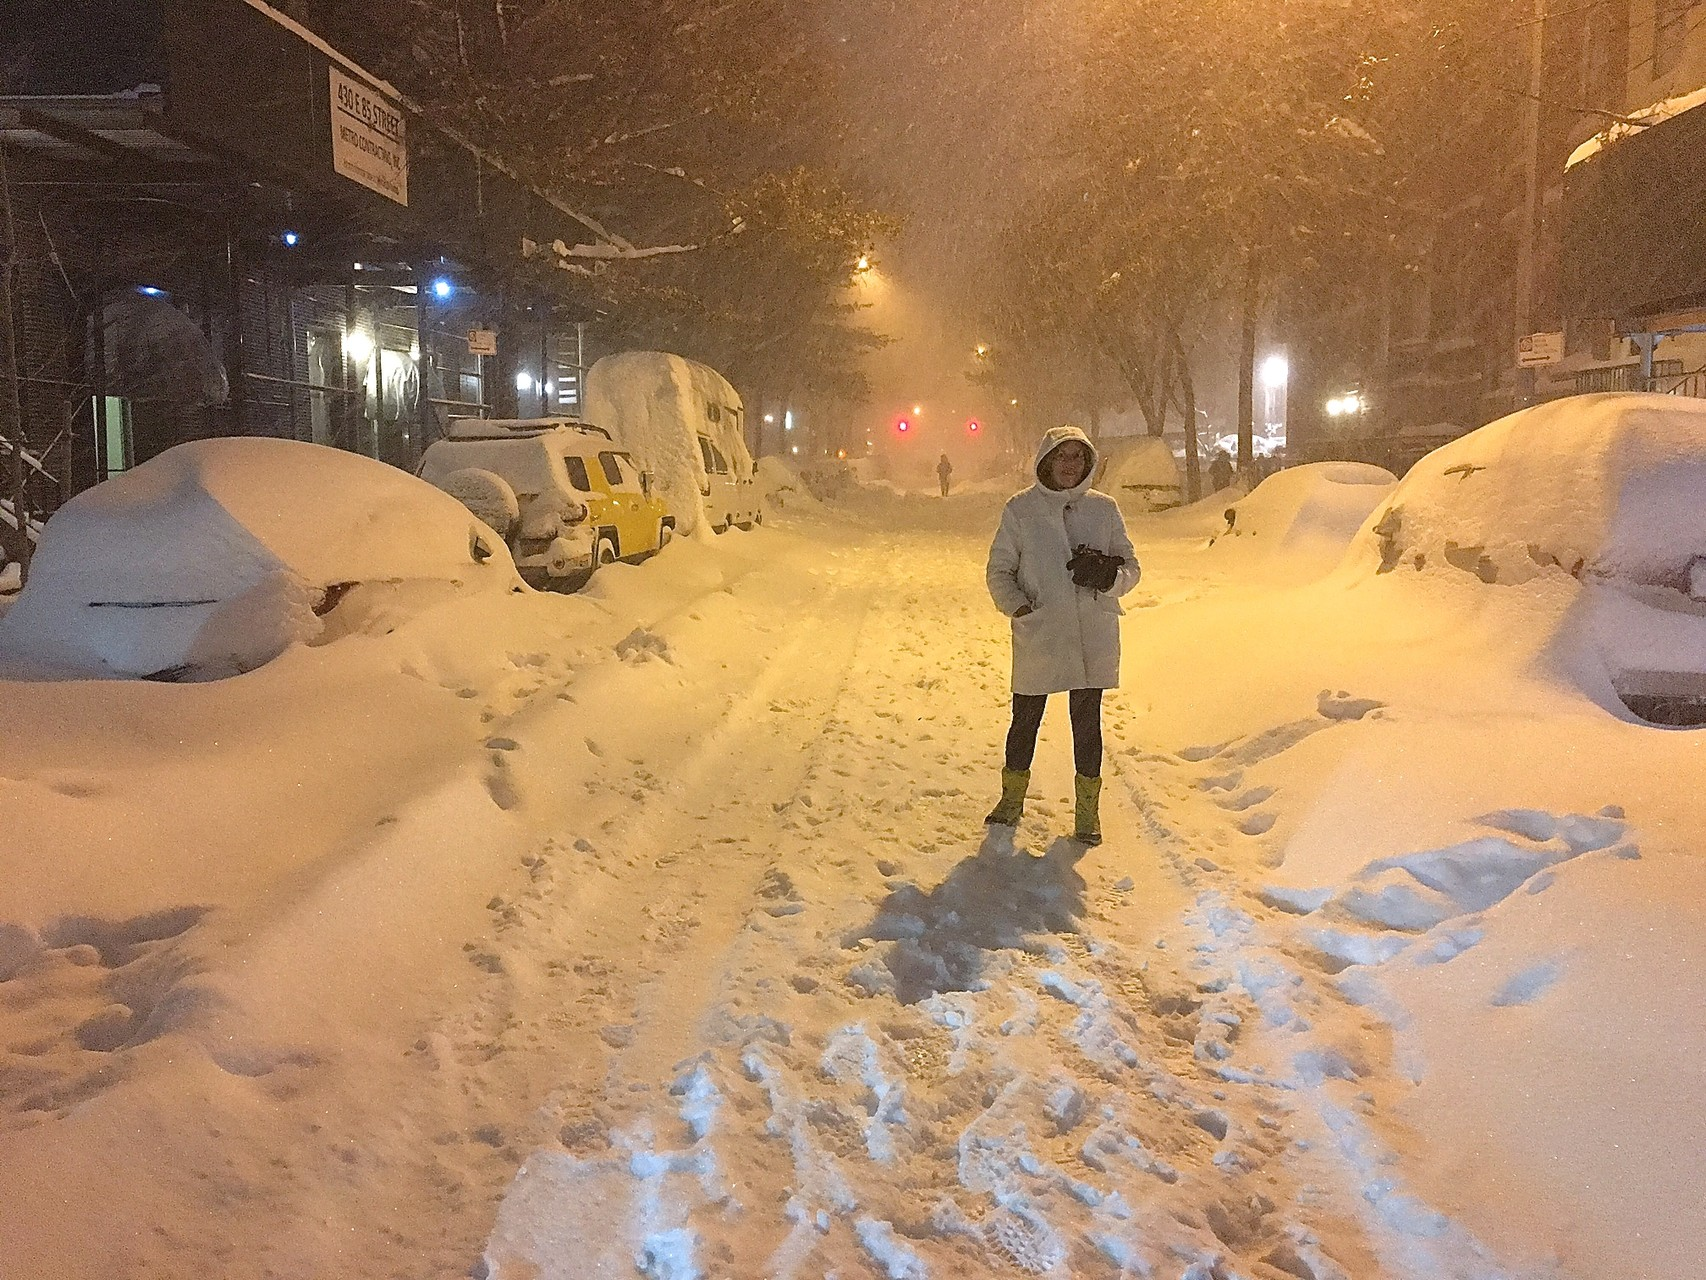 Lorraine on 85th St, Jan 23, 2016